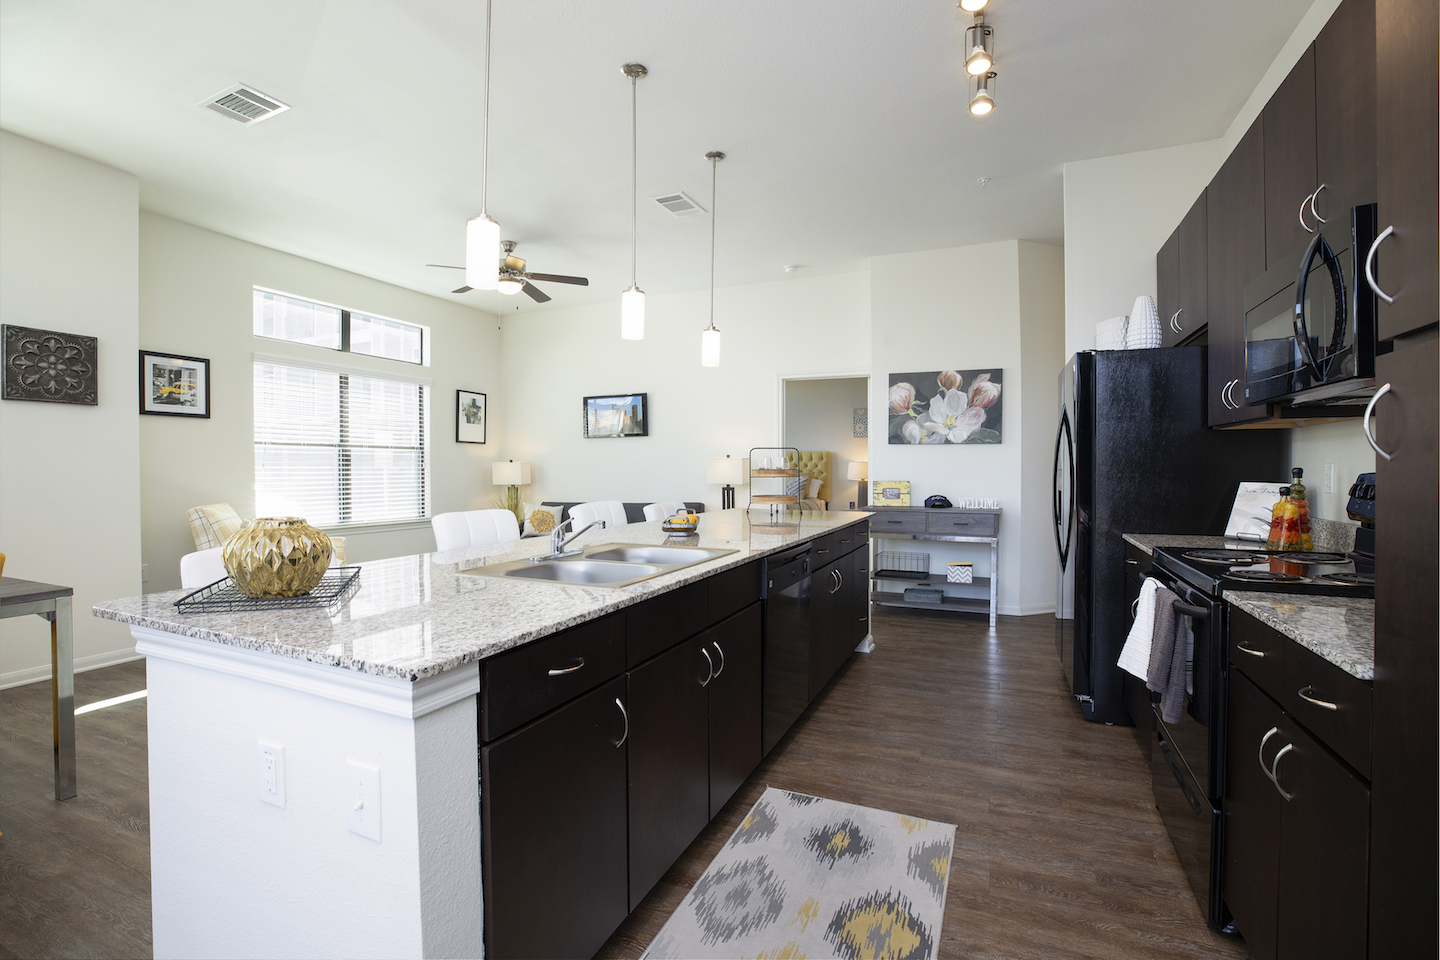 Modern Kitchens With Granite Countertops At Haven at Main Apartments In Houston, TX